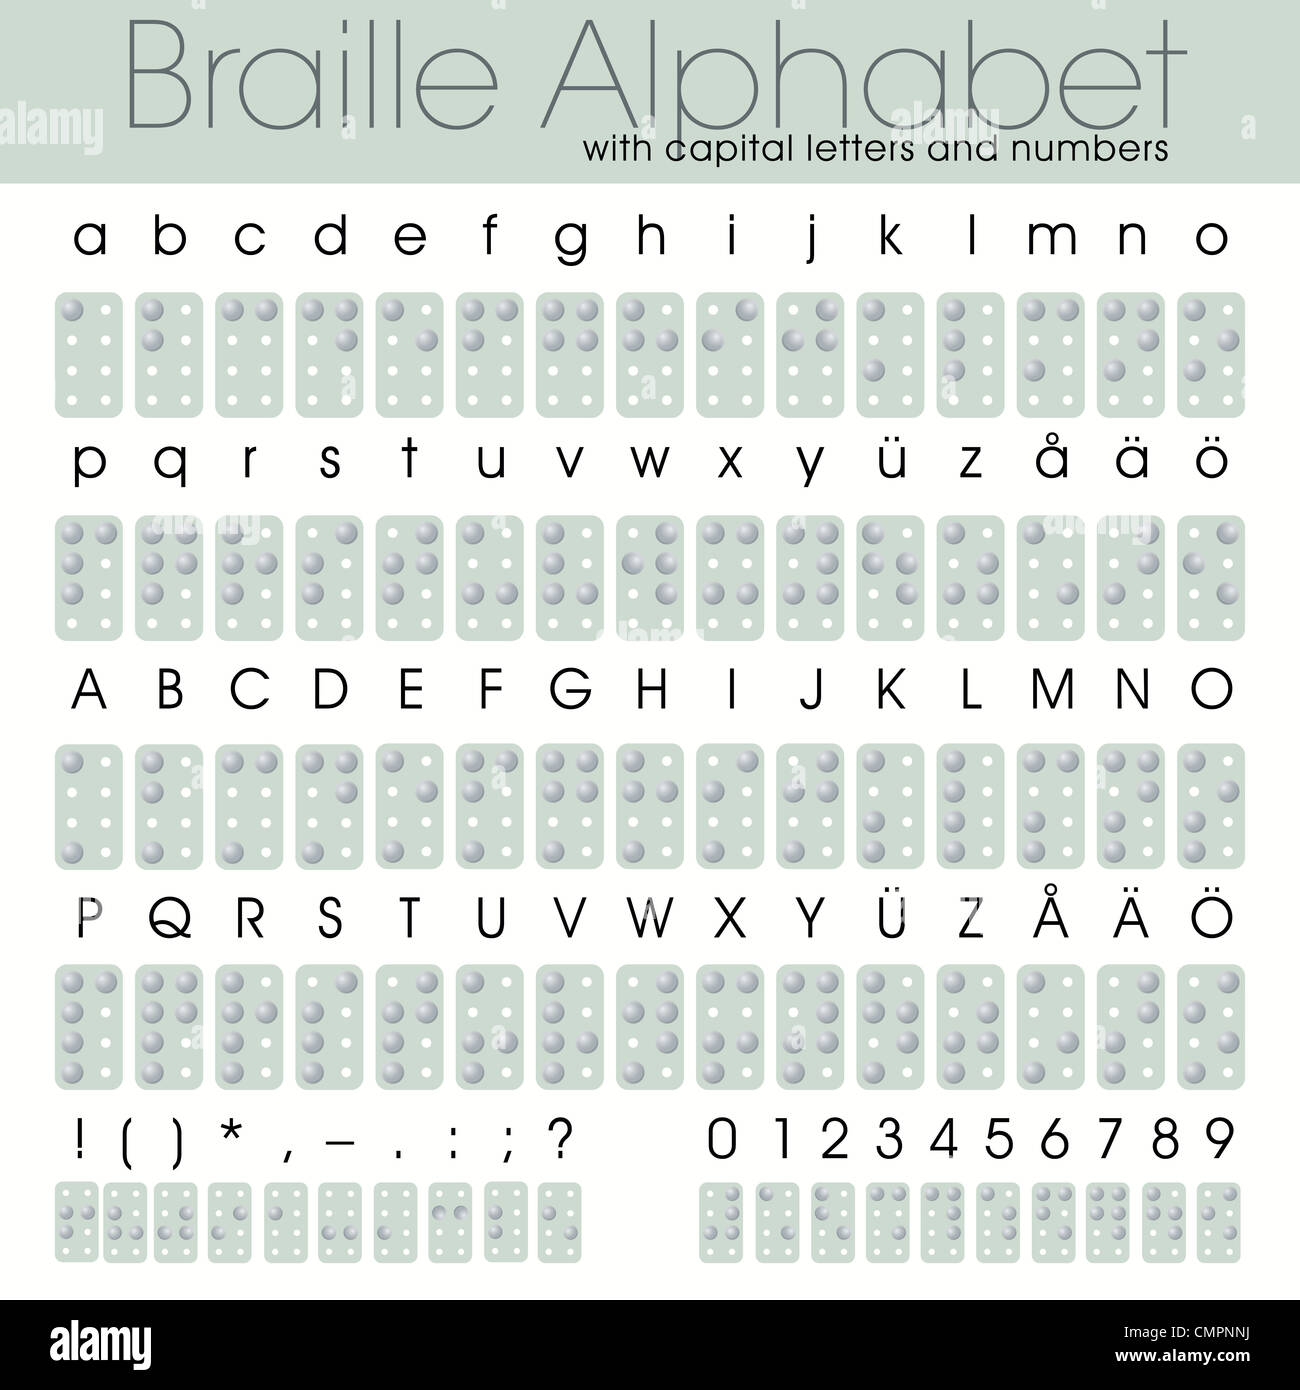 braille alphabet with capital letters and numbers